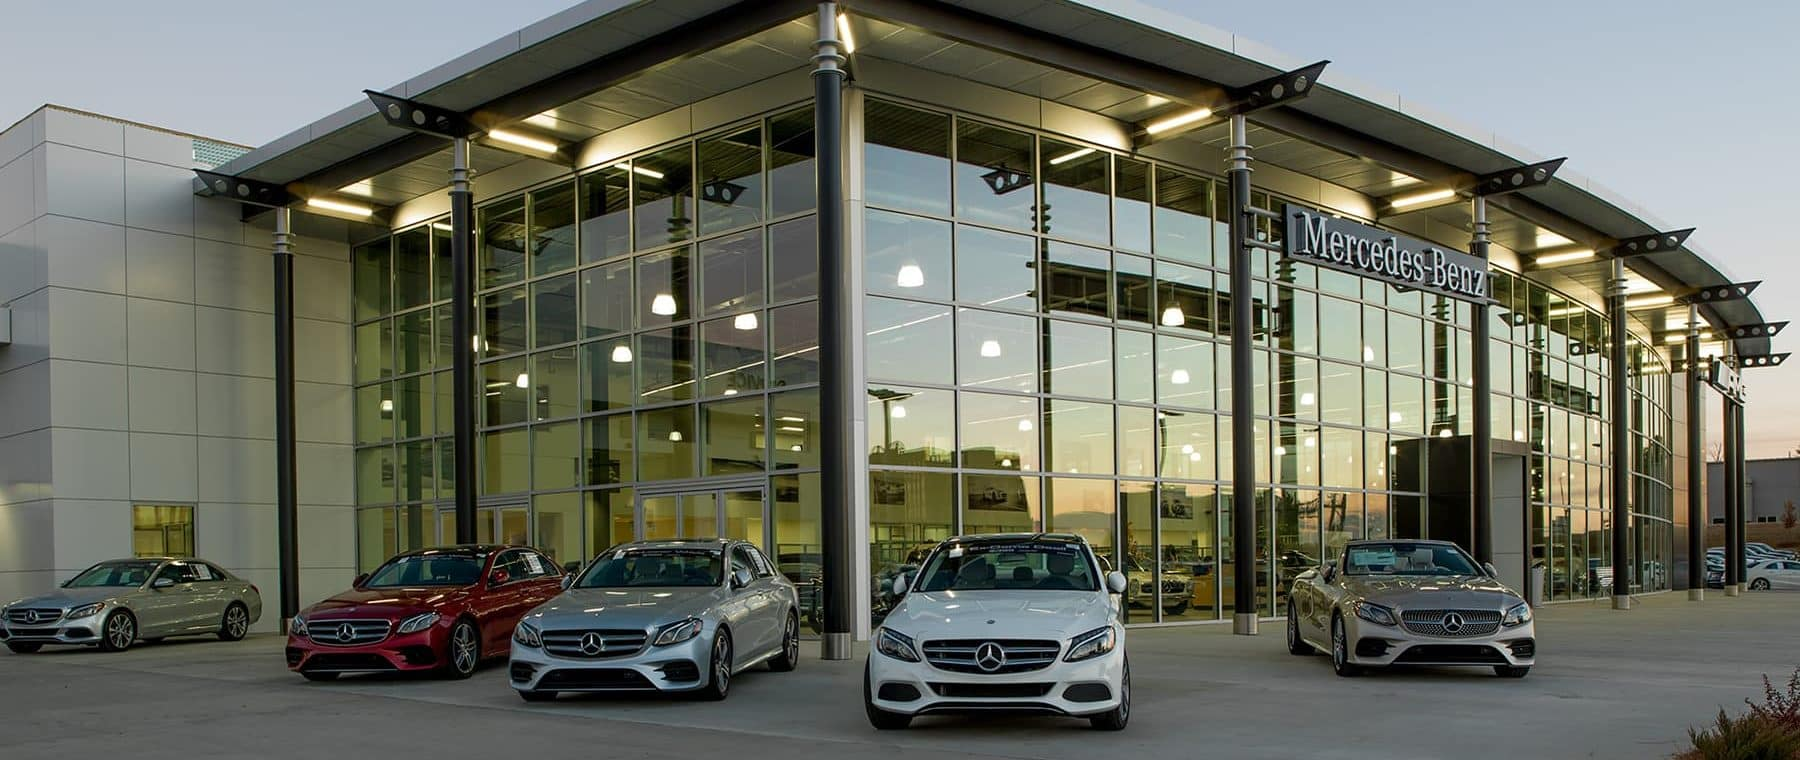 Mercedes benz of jackson mississippi luxury car dealer for Dealer mercedes benz